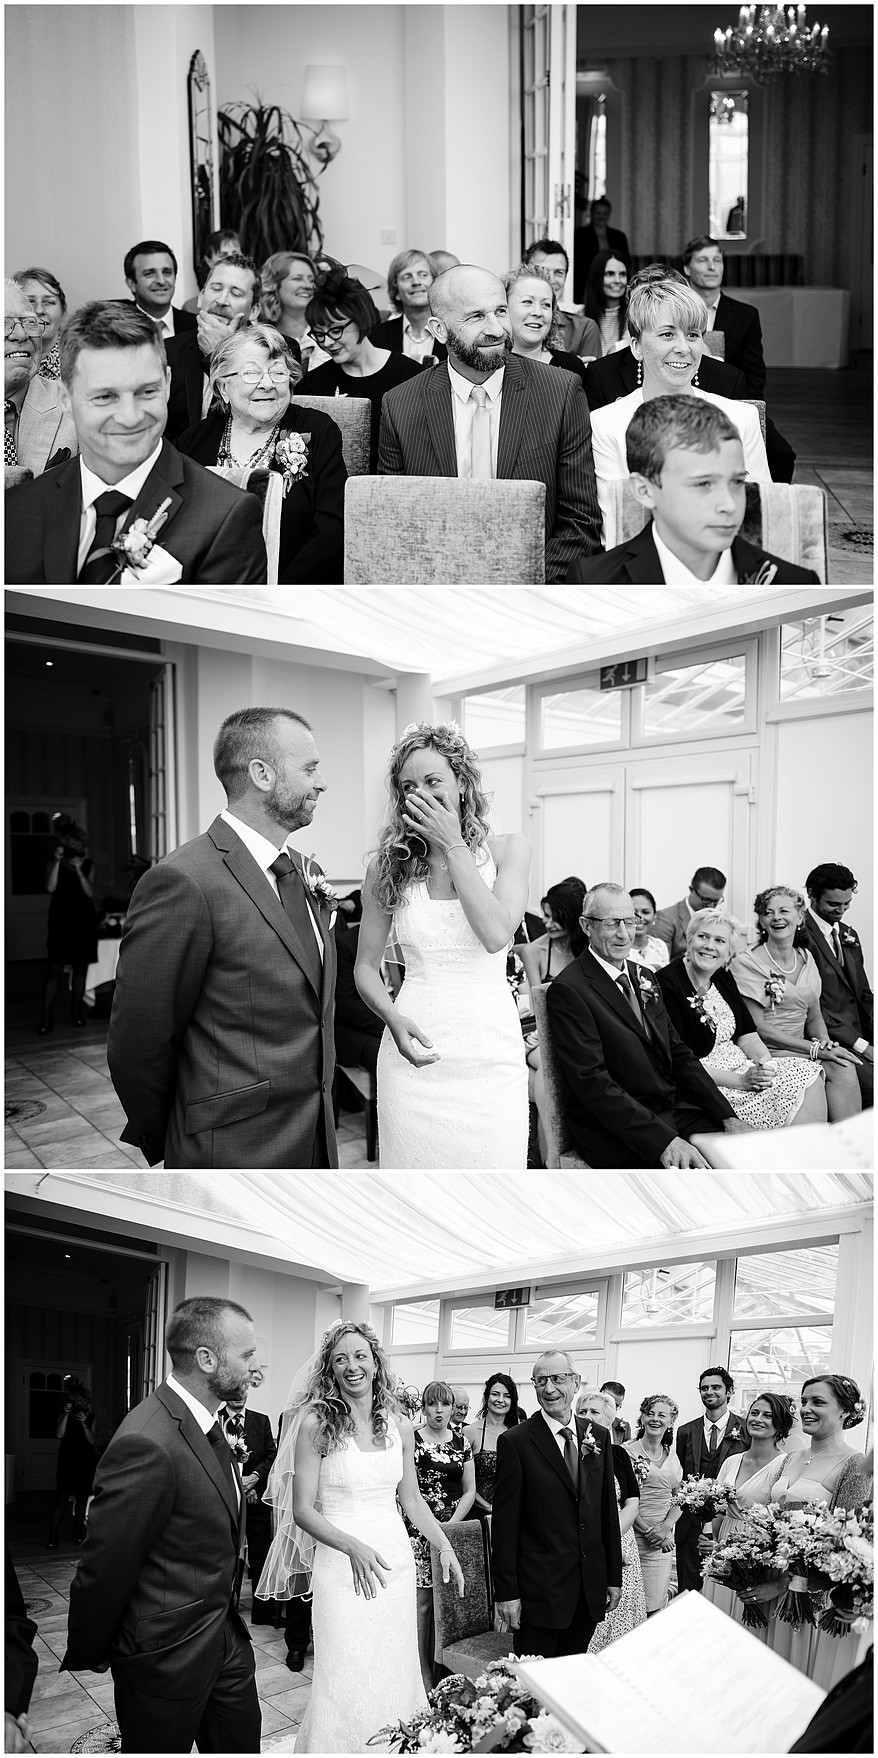 Beautiful wedding ceremony at the Carbis bay hotel